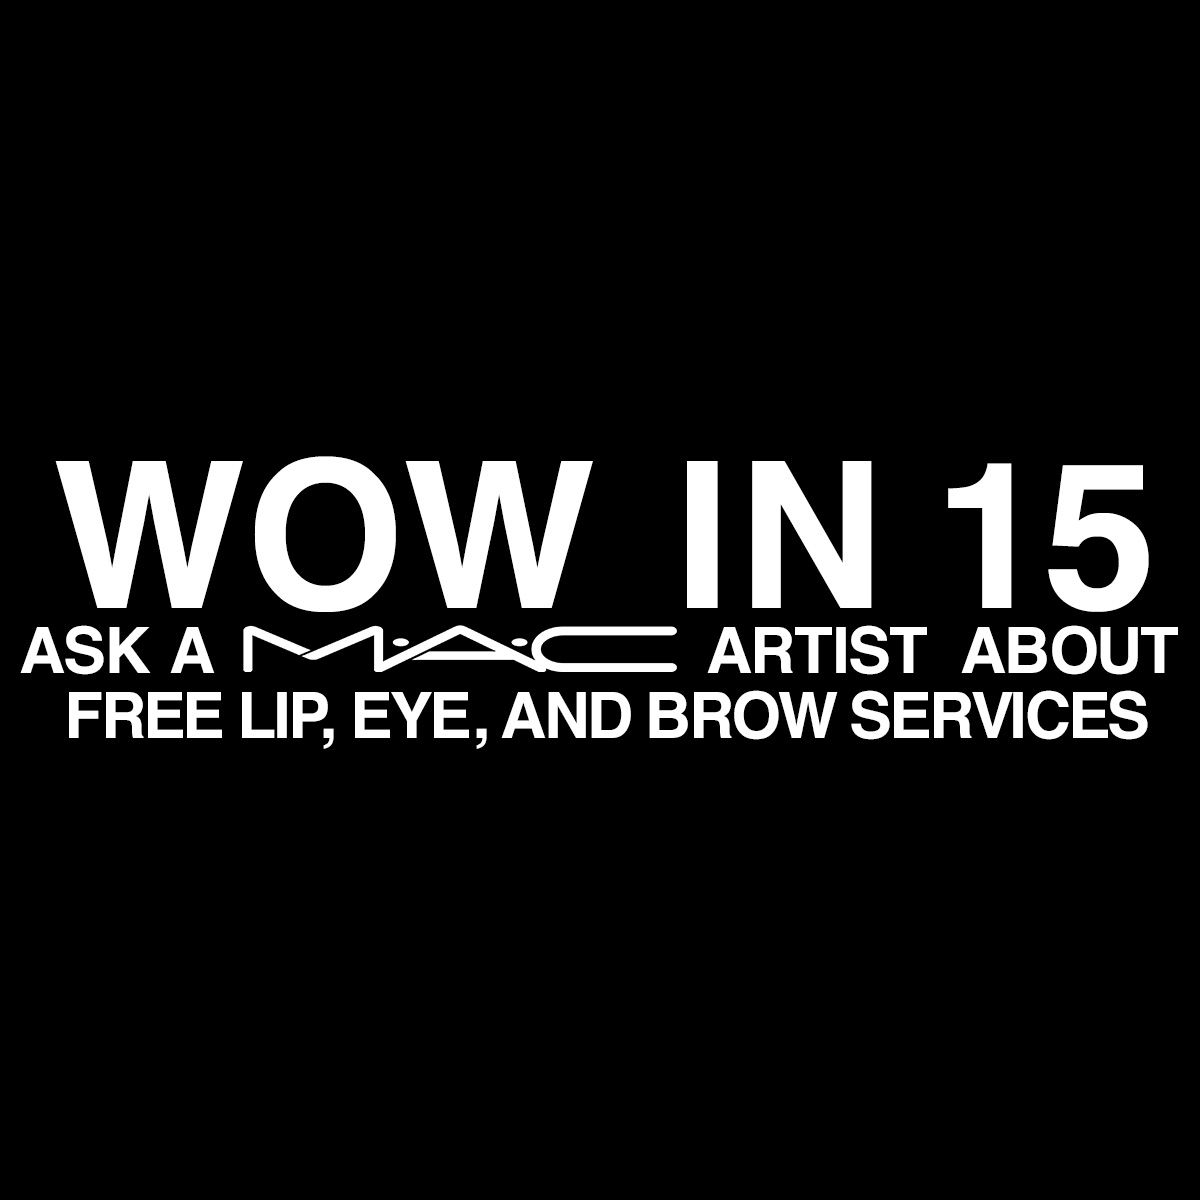 Wow in 15, Ask a Mac Artist About, Free Lip, Eye, And Brow Services